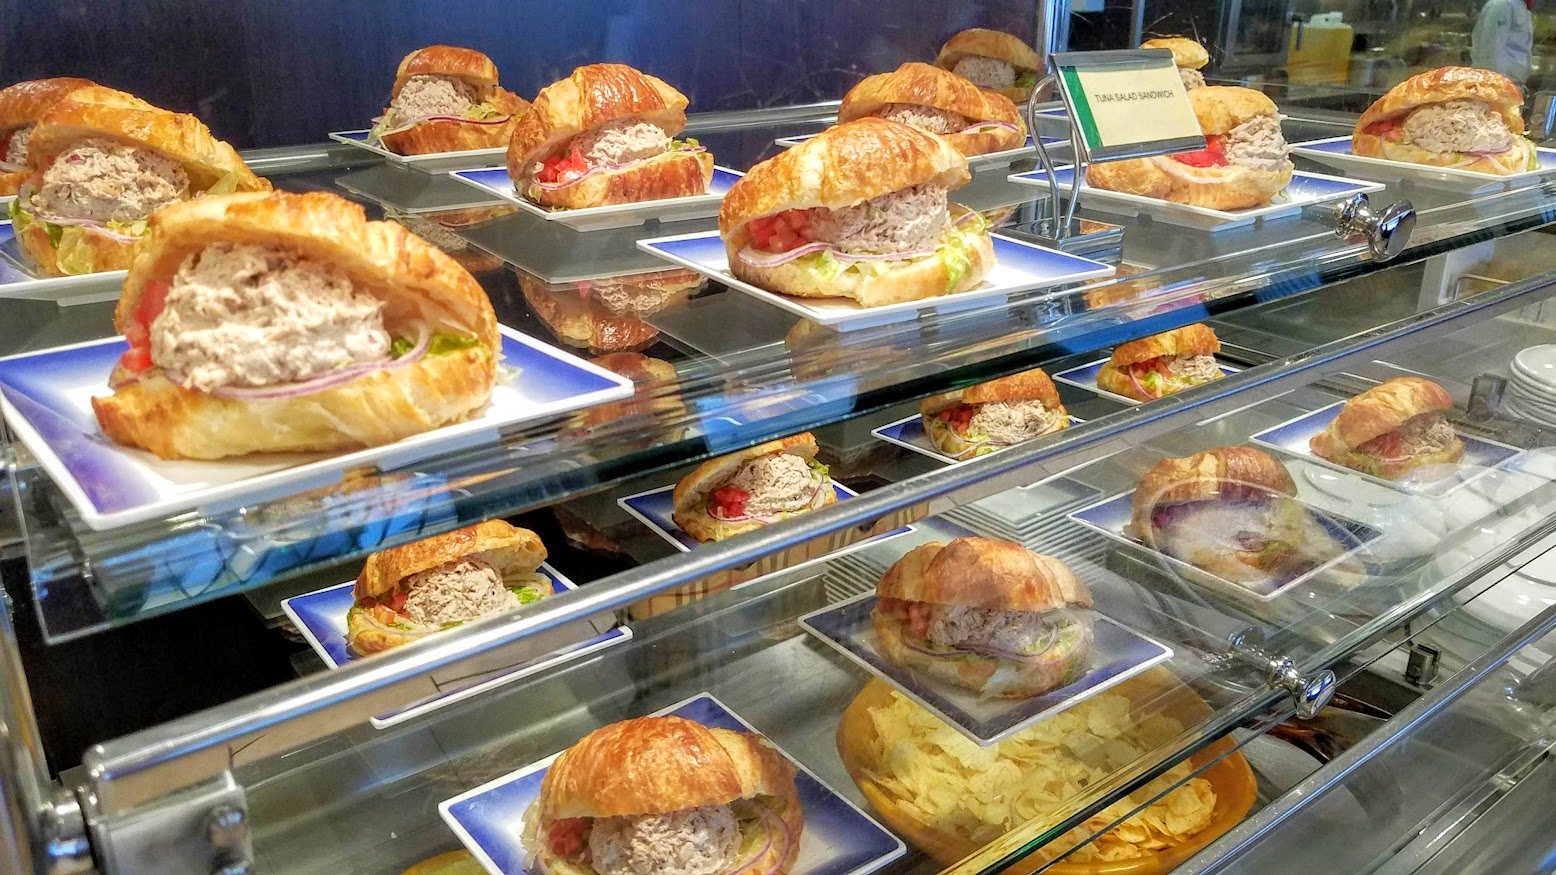 Tuna Sandwiches offered at The Garden Cafe lunch buffet.